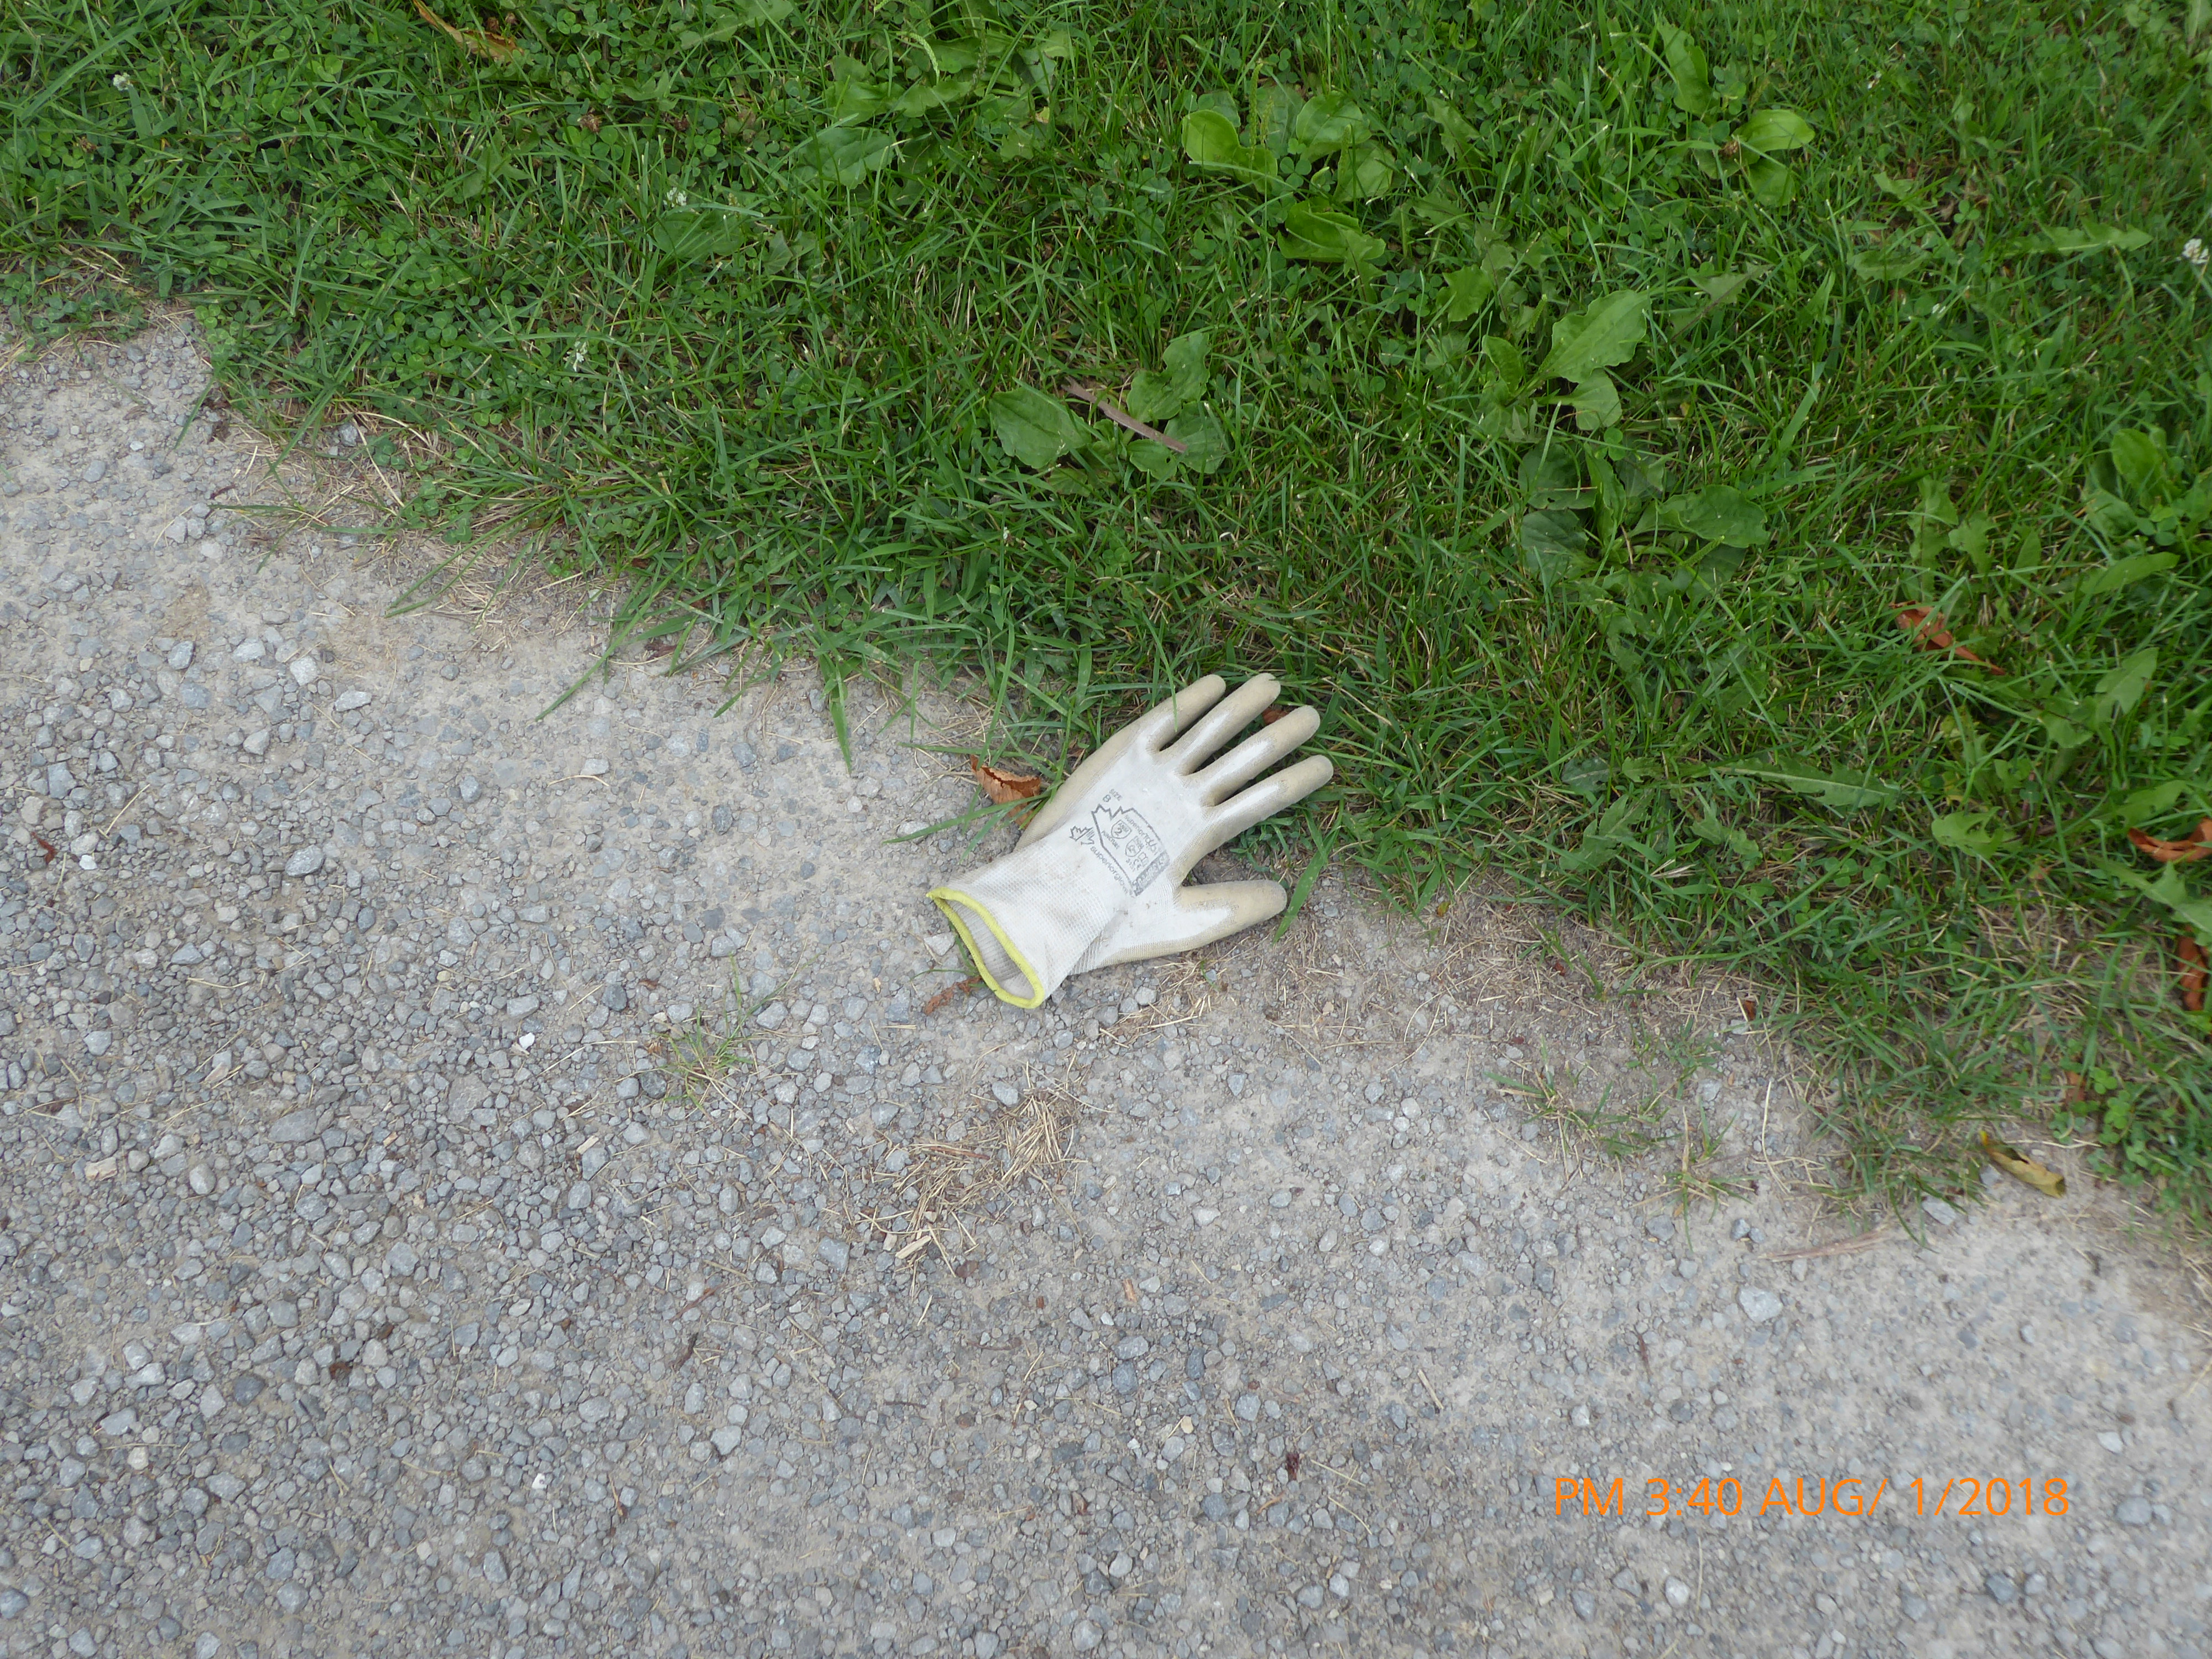 Single glove left behind